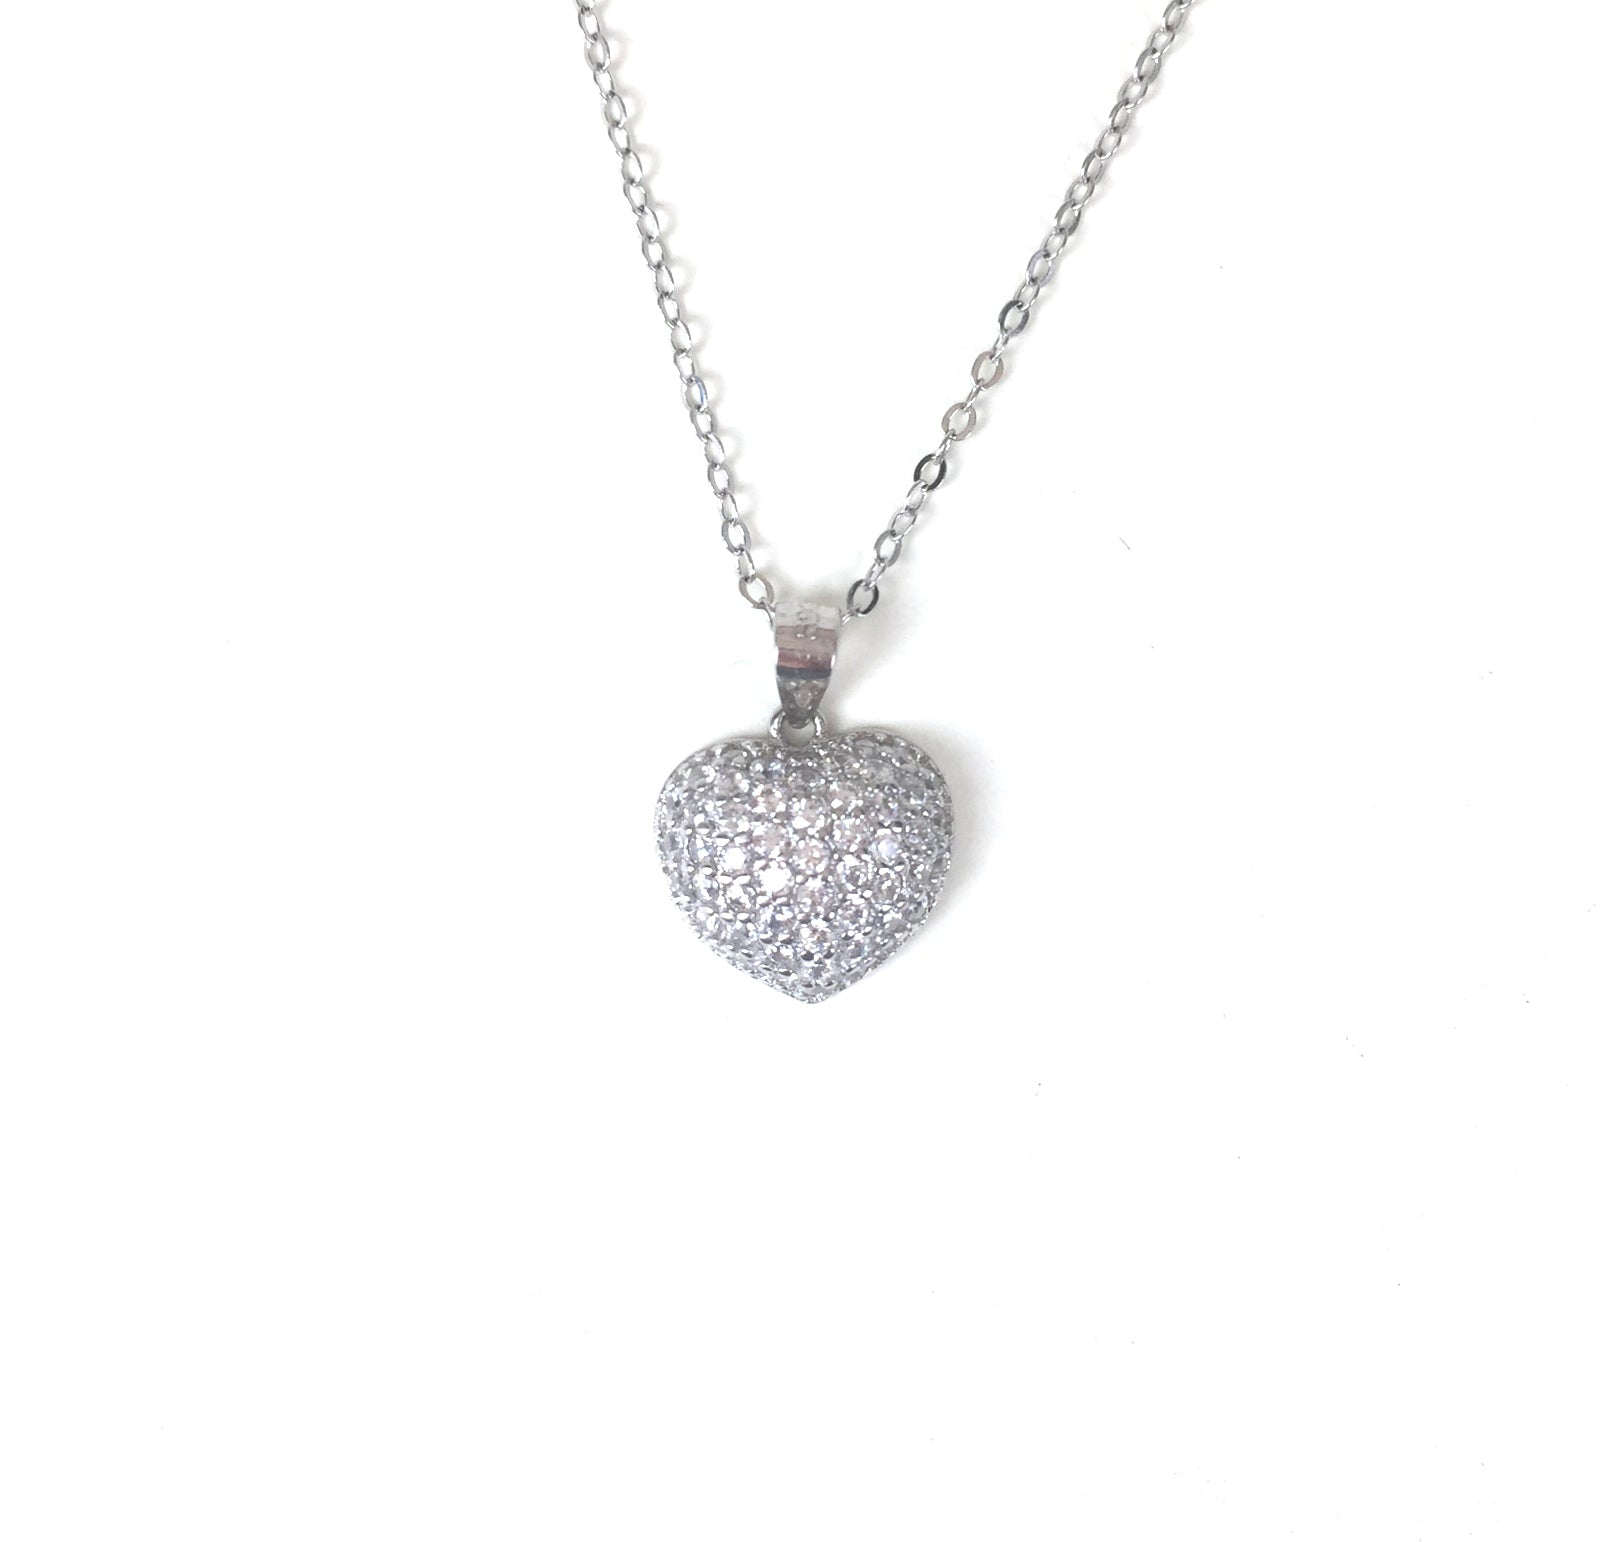 CLASSIC HEART PAVE CZ STERLING SILVER NECKLACE